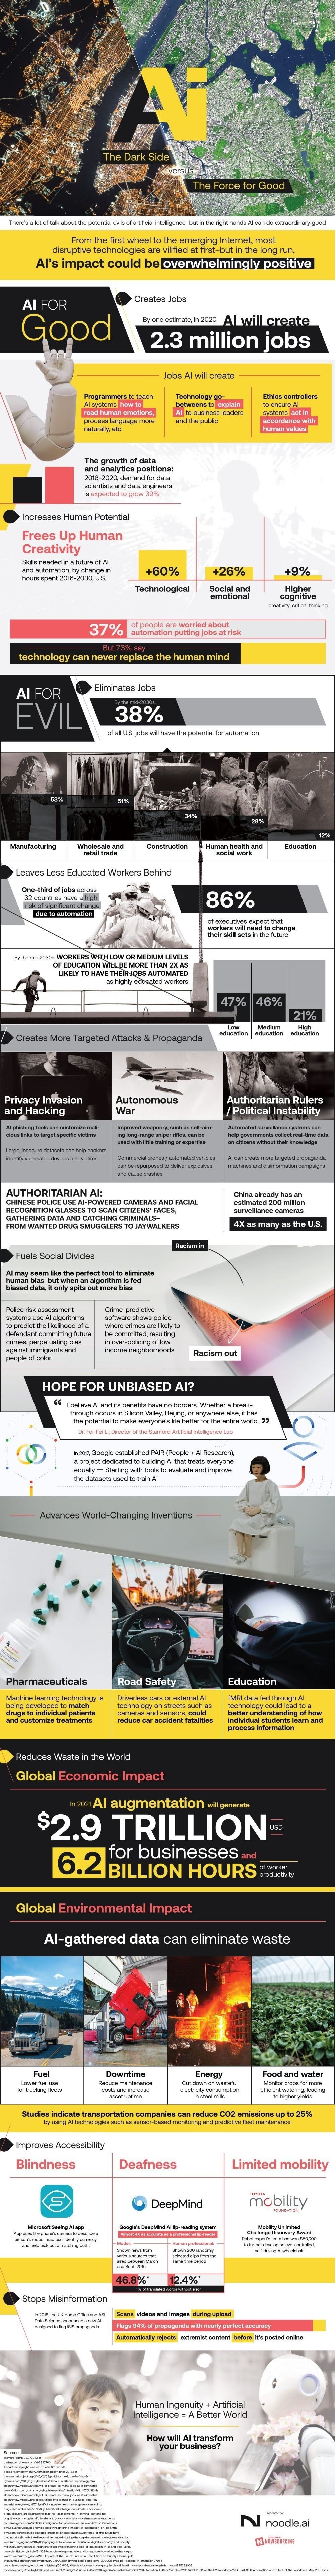 AI for the evil vs AI for the better.#ifographic